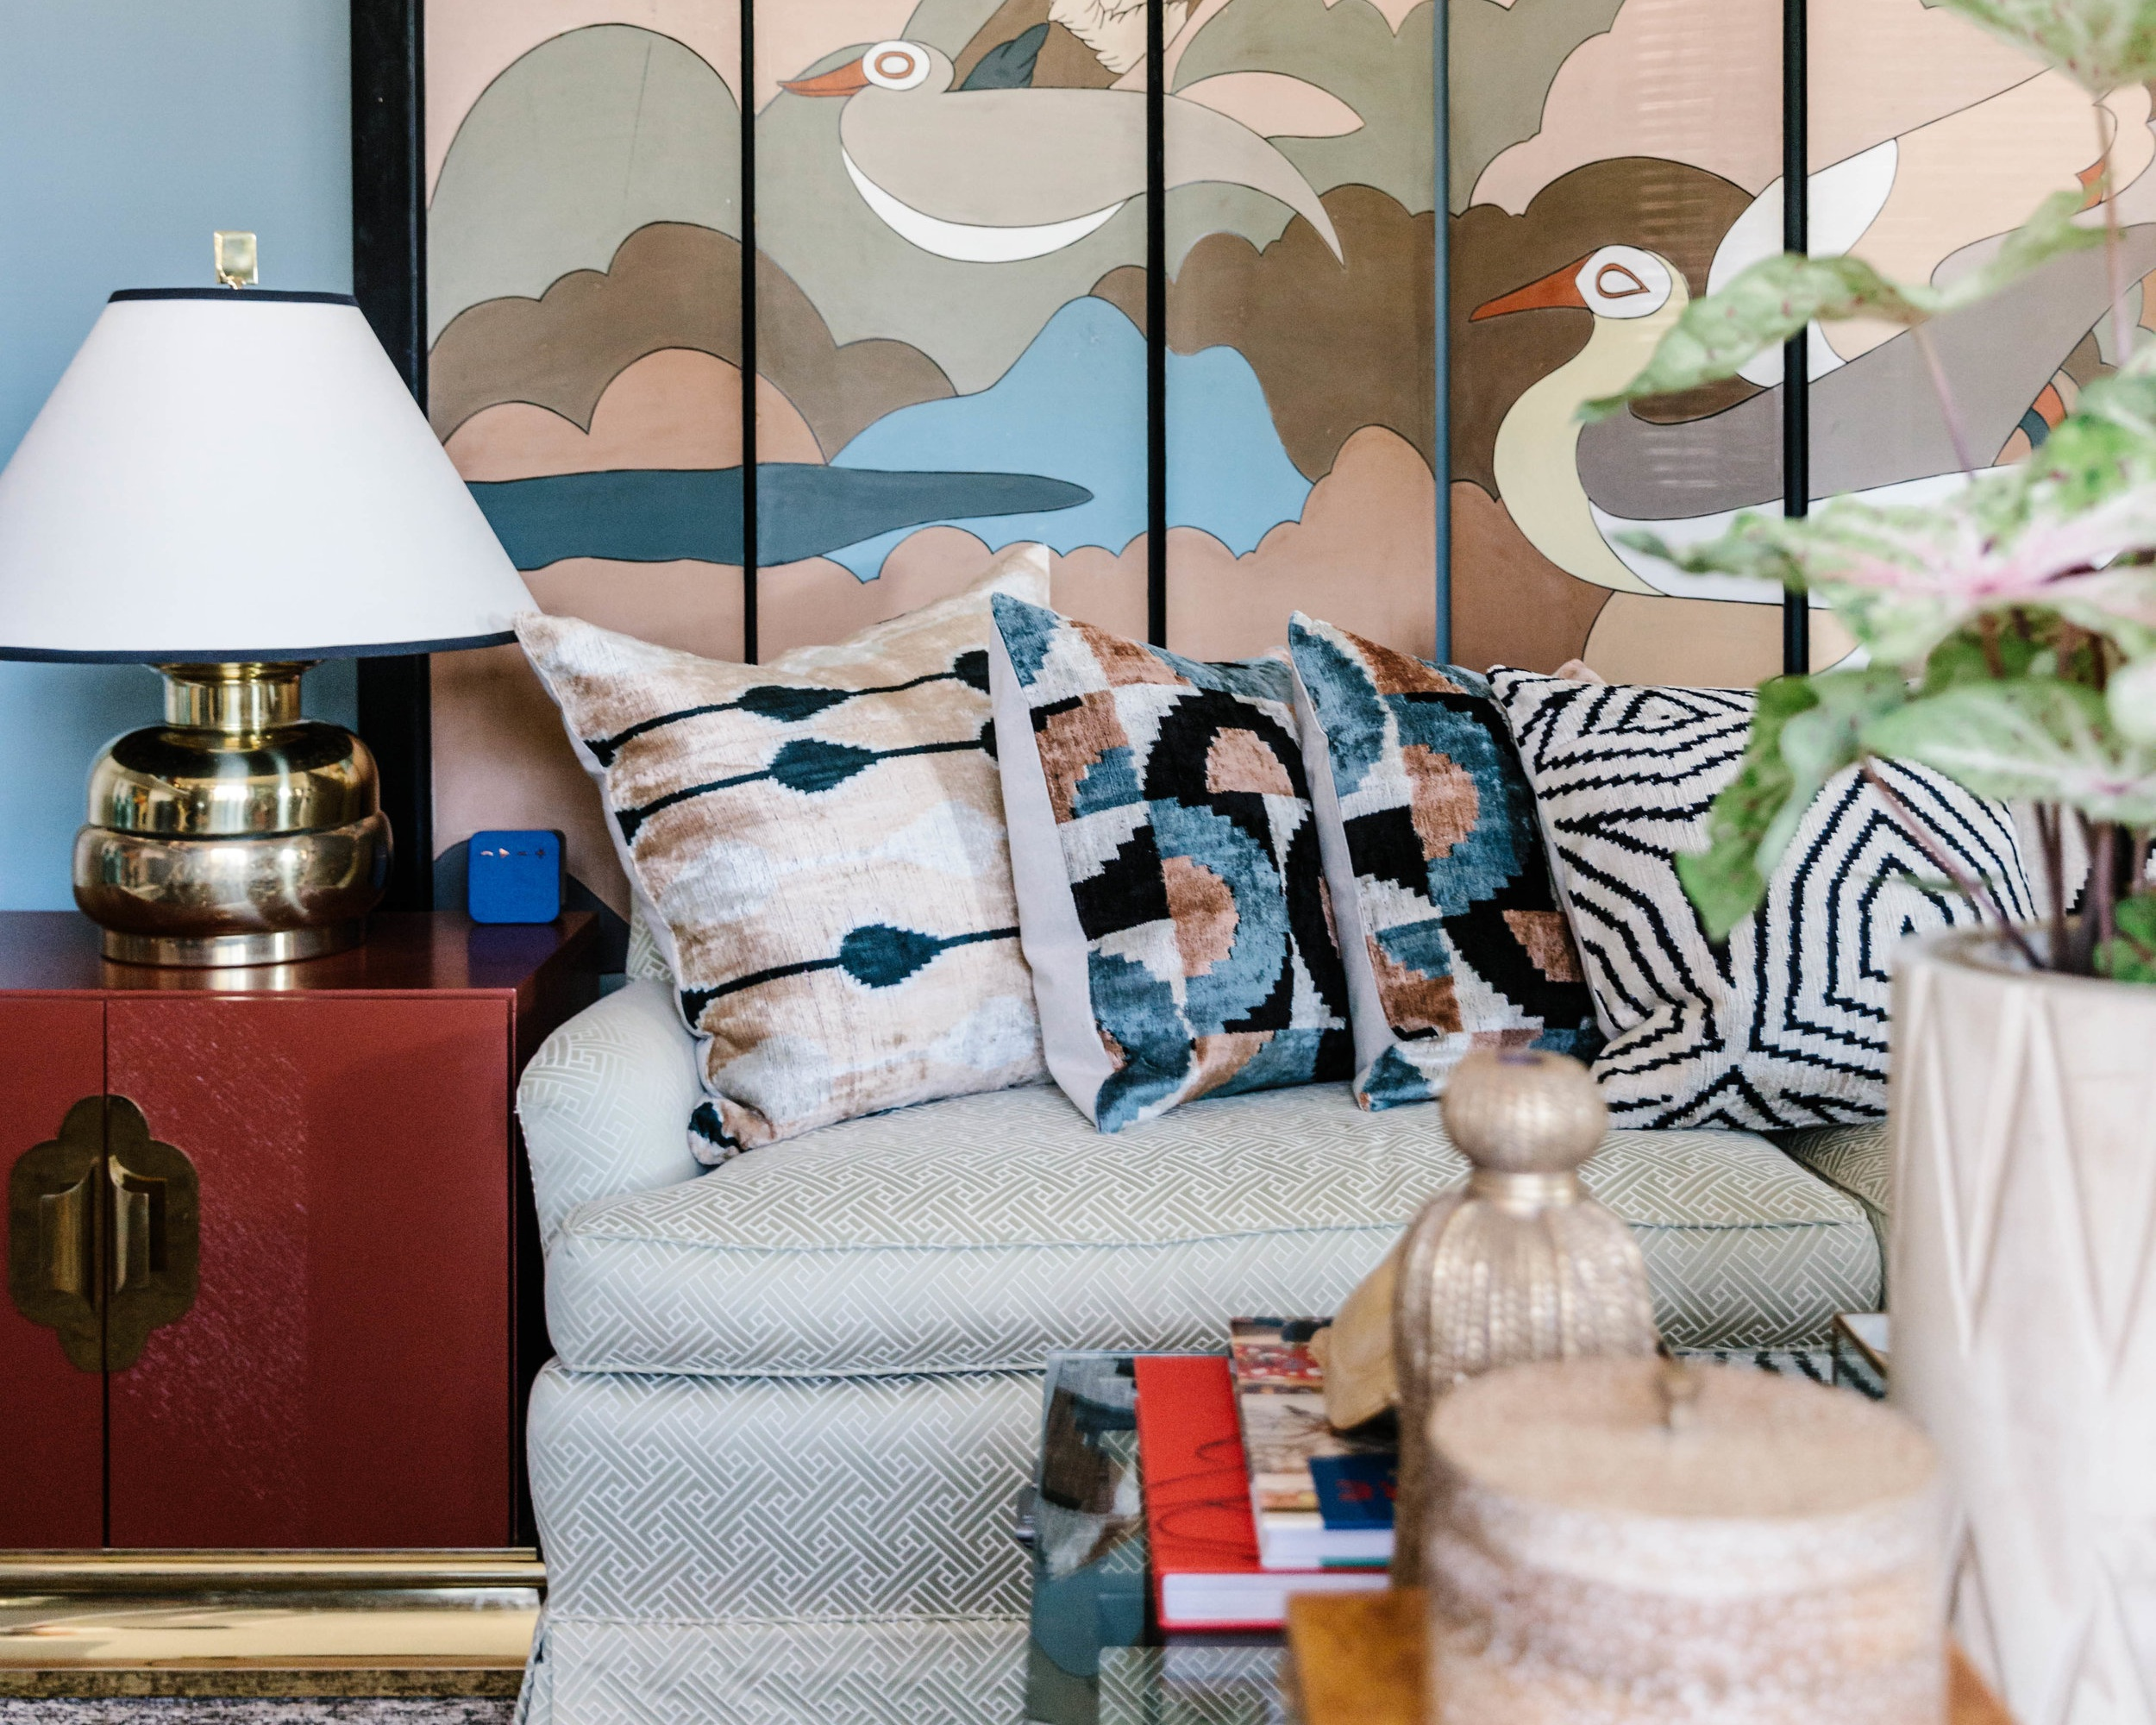 Minority Owned Vintage Home Decor Boutique Opens in Charlotte, NC - A true tastemaker and design maven, Ariene Bethea, opened her new shop in the Oakhurst neighborhood of Charlotte, NC. Her shop, Dressing Room Interiors, is located in a gray mid-century house with a coral door.